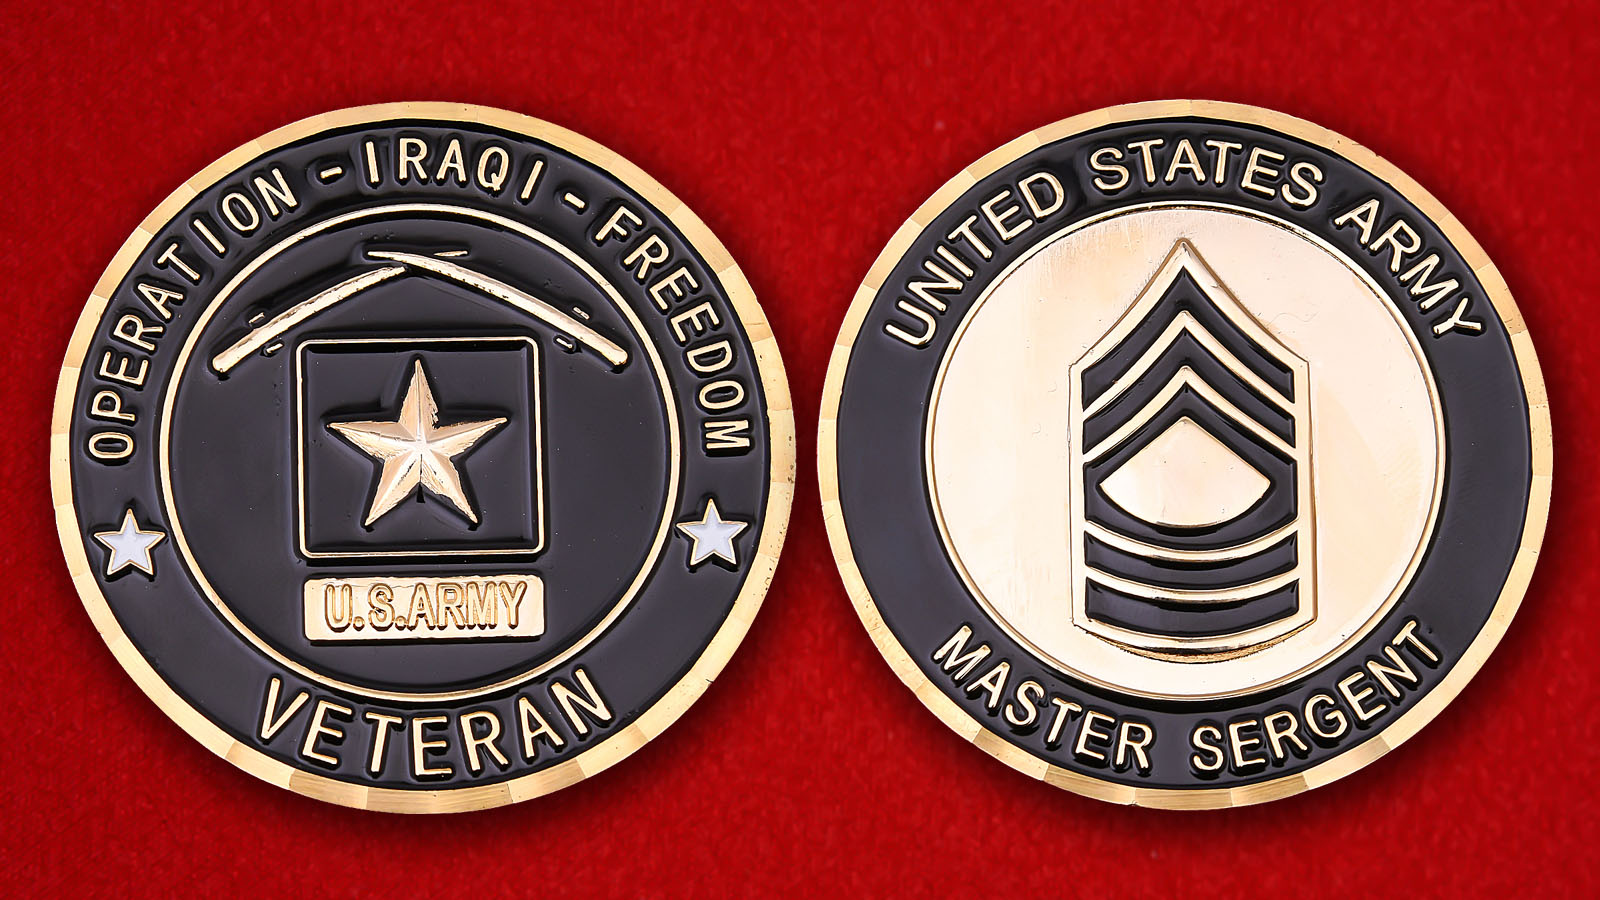 US Army Master Sergeant Veteran Of Operation Iraqi Freedom Challenge Coin